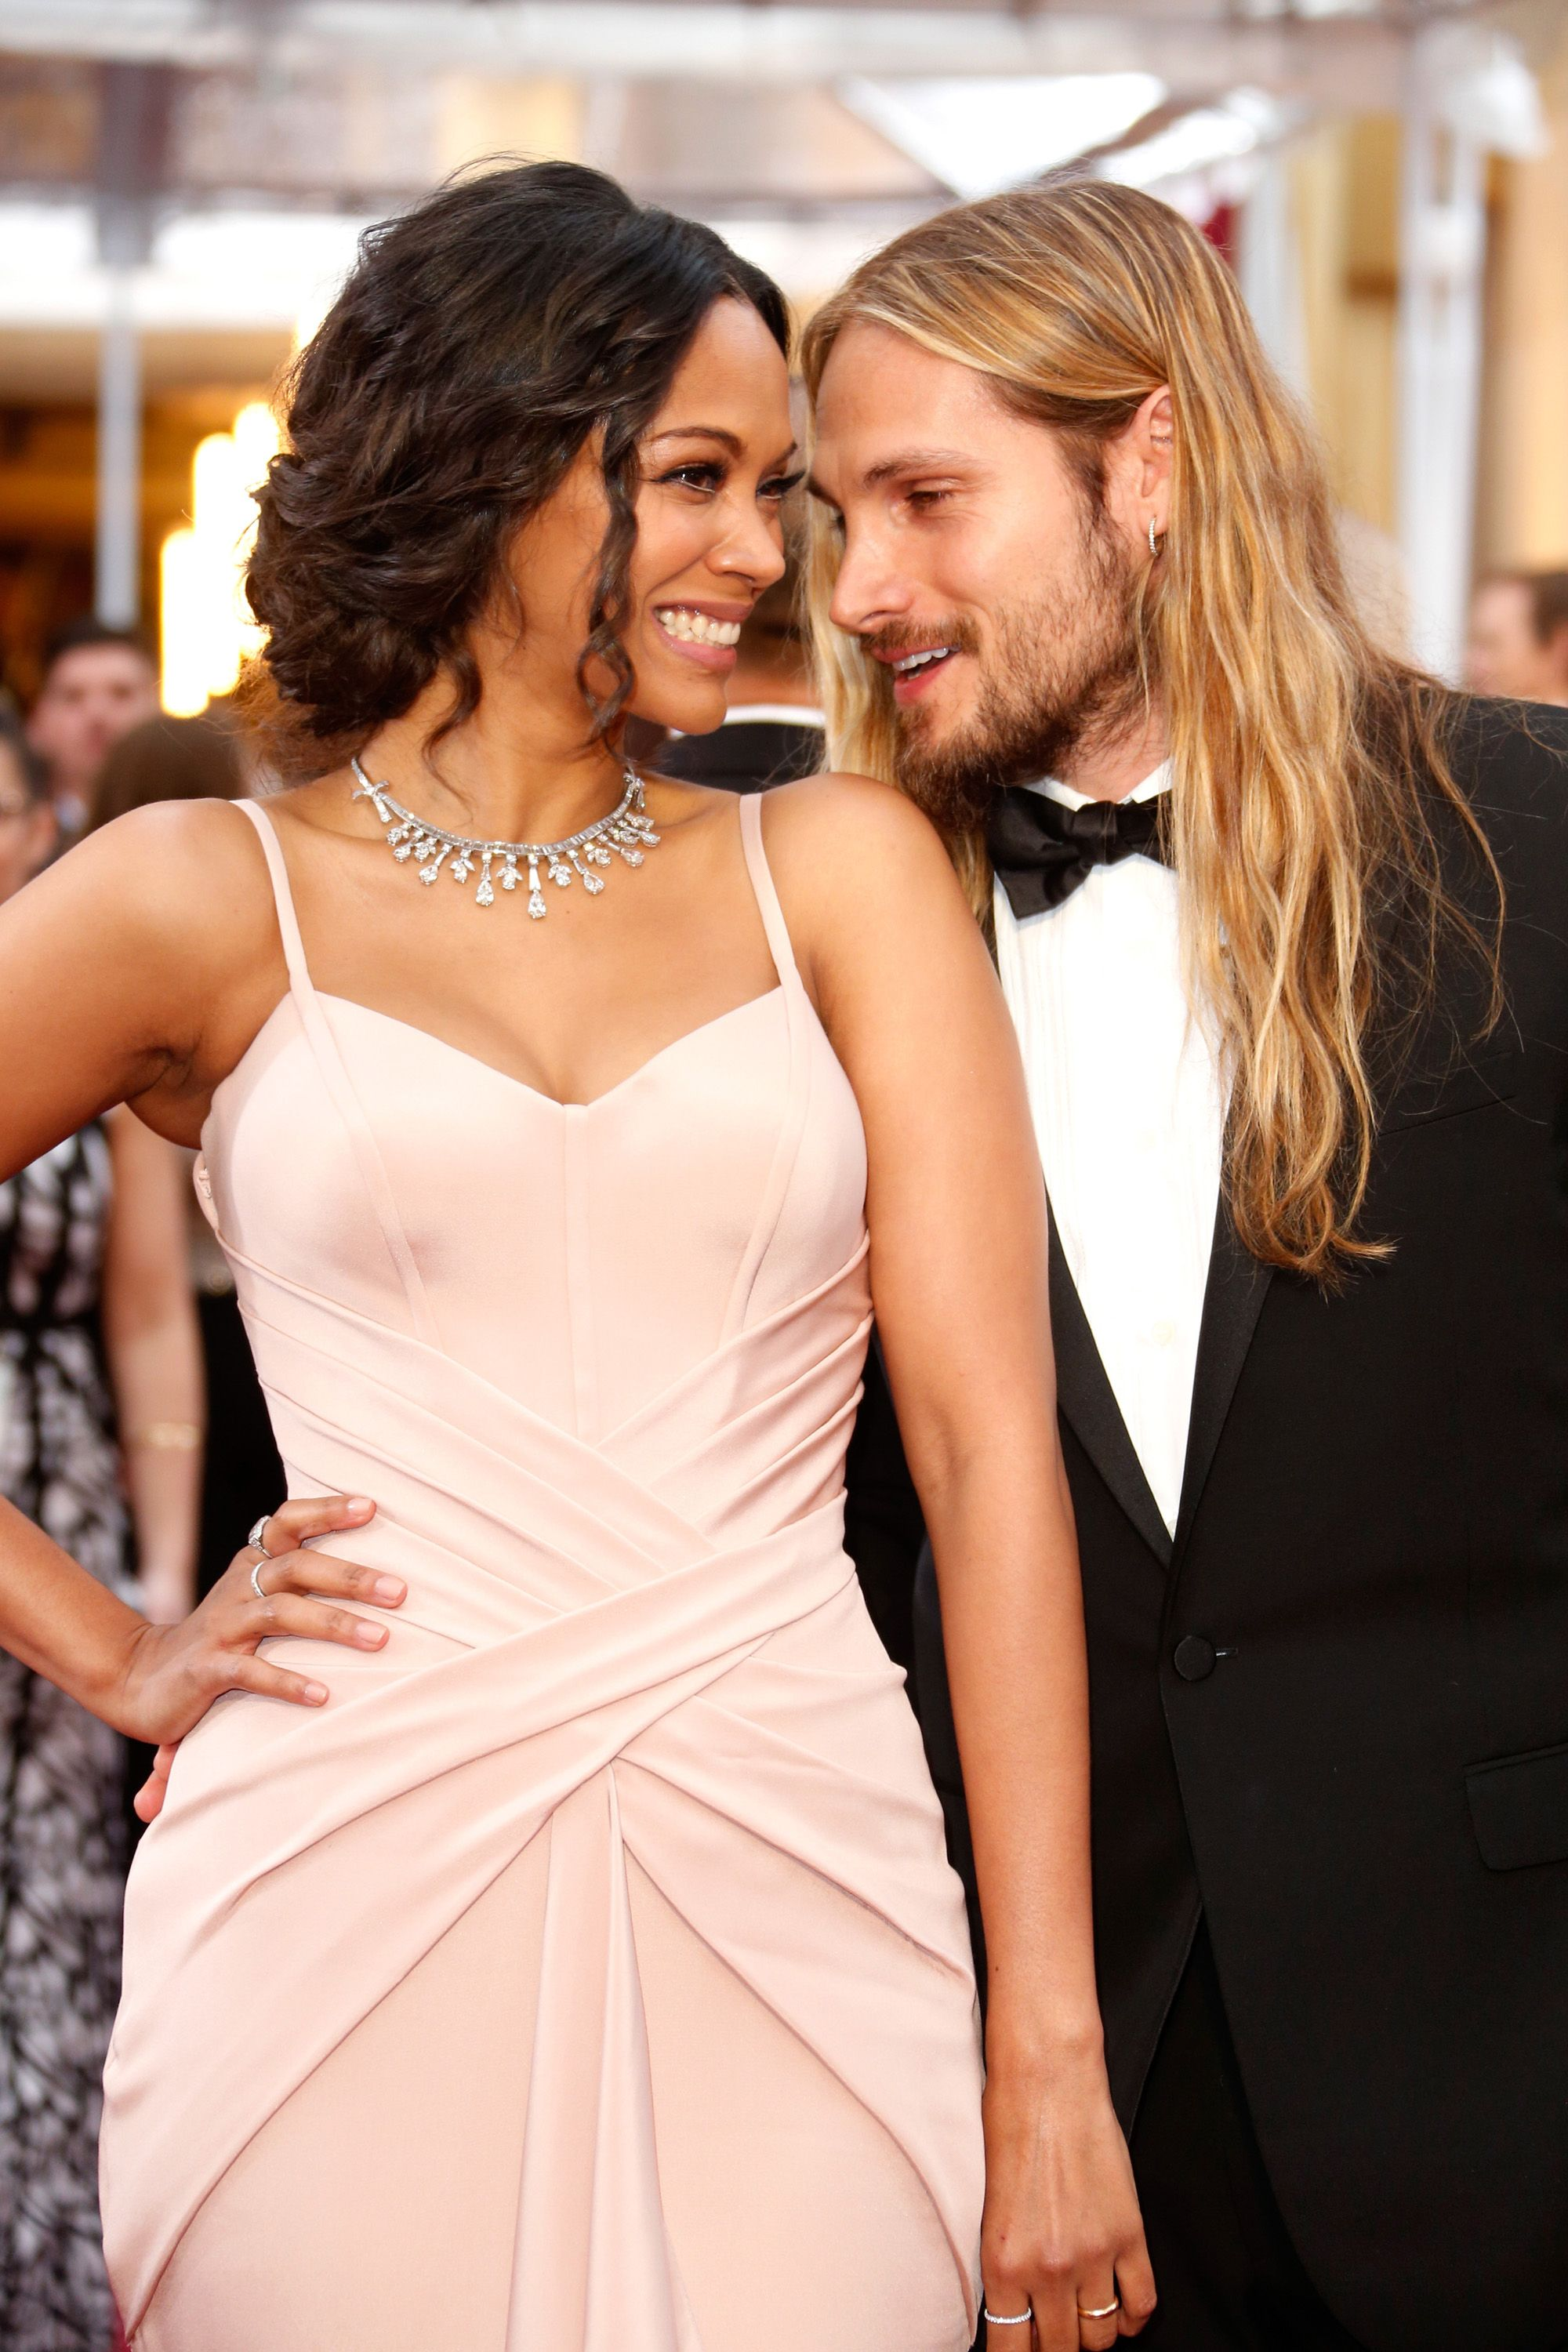 HOLLYWOOD, CA - FEBRUARY 22:  Actress Zoe Saldana and artist Marco Perego attend the 87th Annual Academy Awards at Hollywood & Highland Center on February 22, 2015 in Hollywood, California.  (Photo by Jeff Vespa/WireImage)